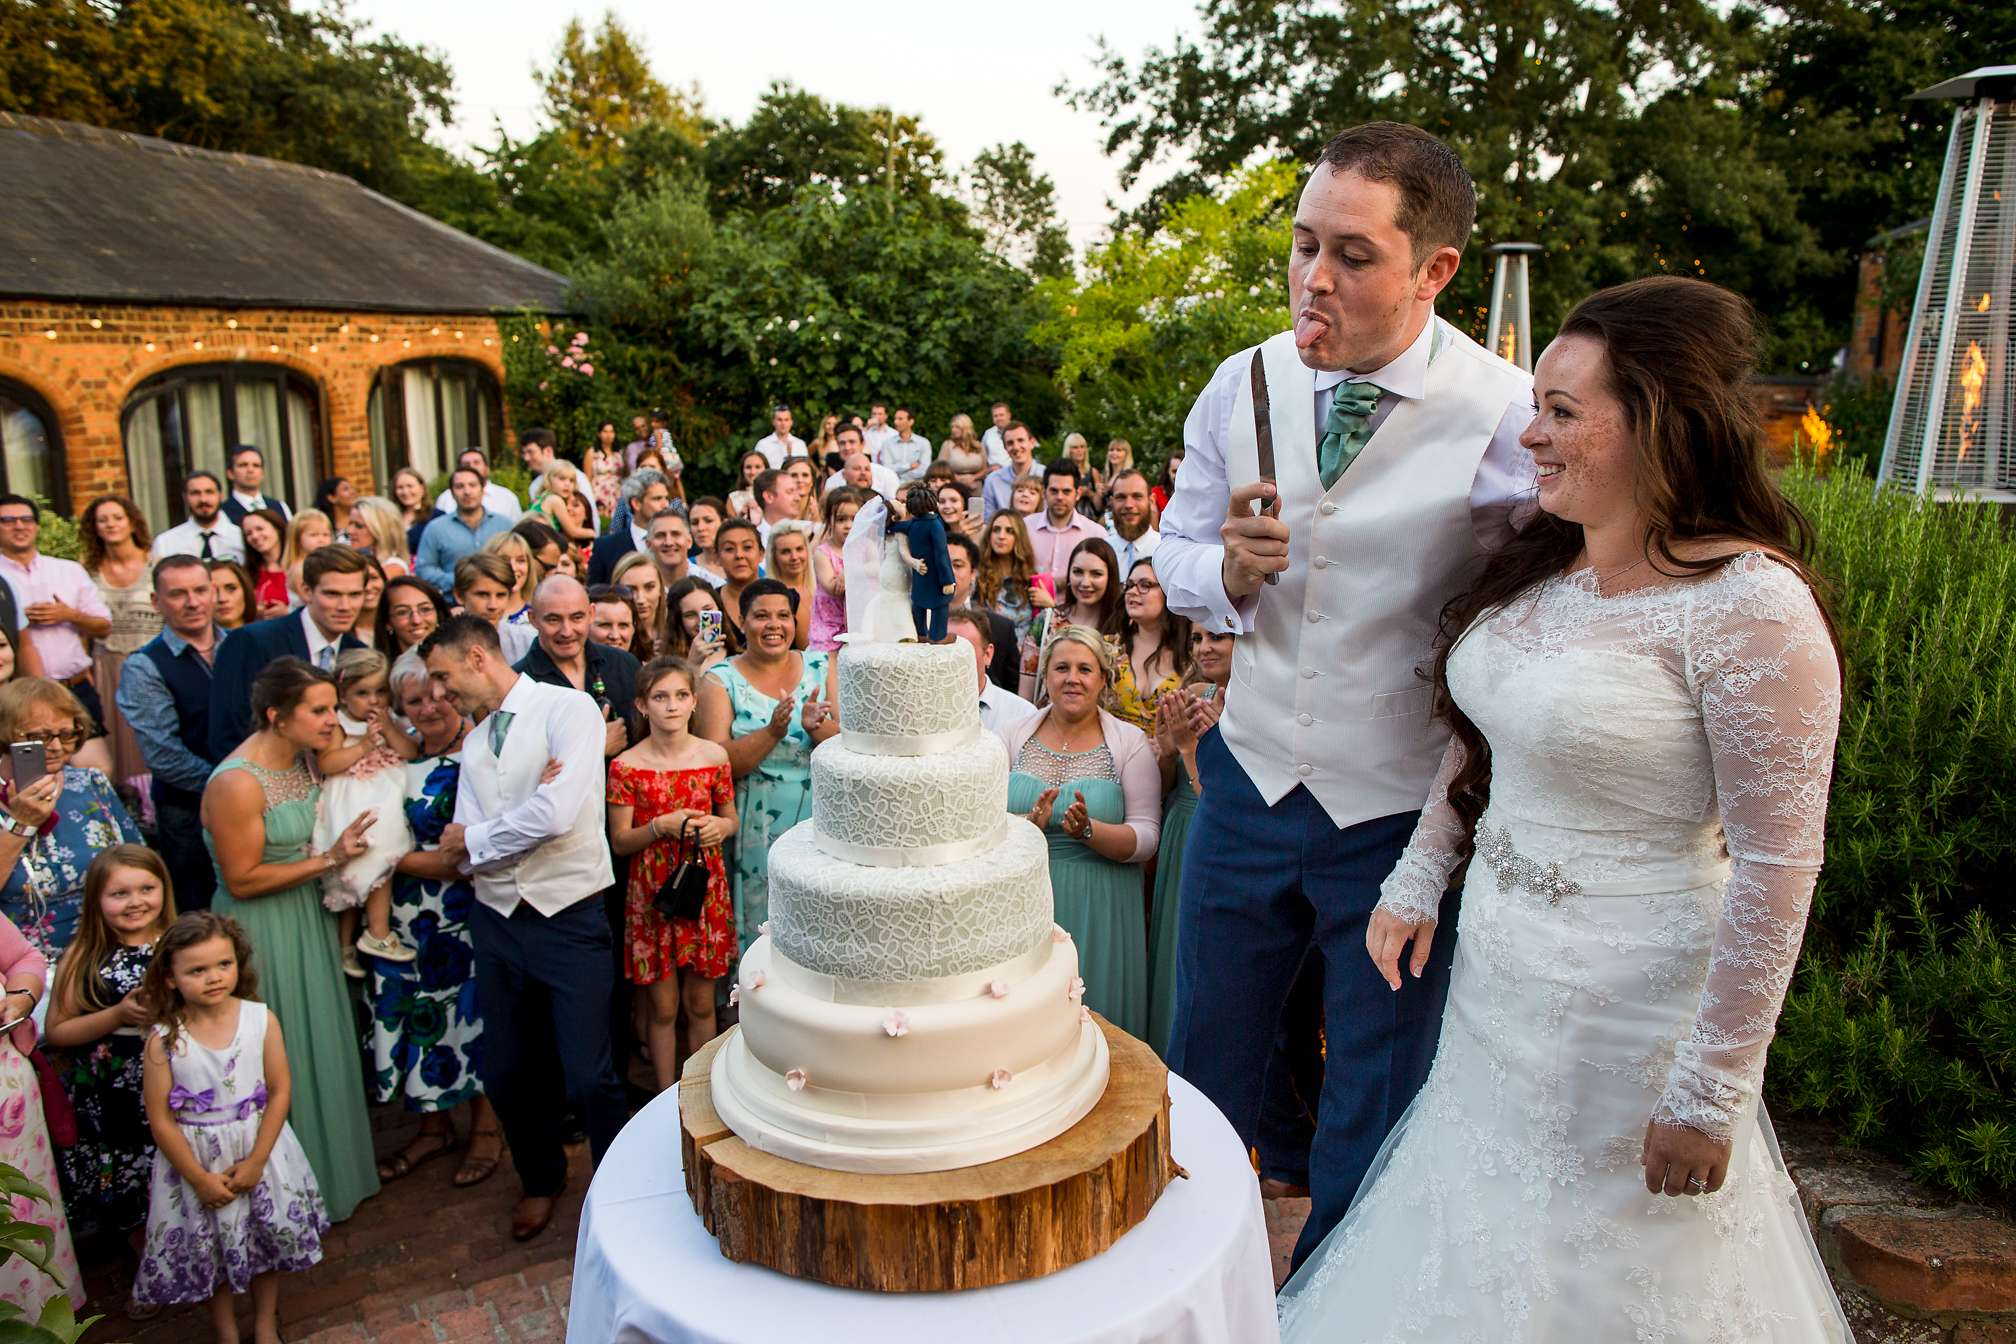 Cutting the Cake, Dodmoor House, Northamptonshire